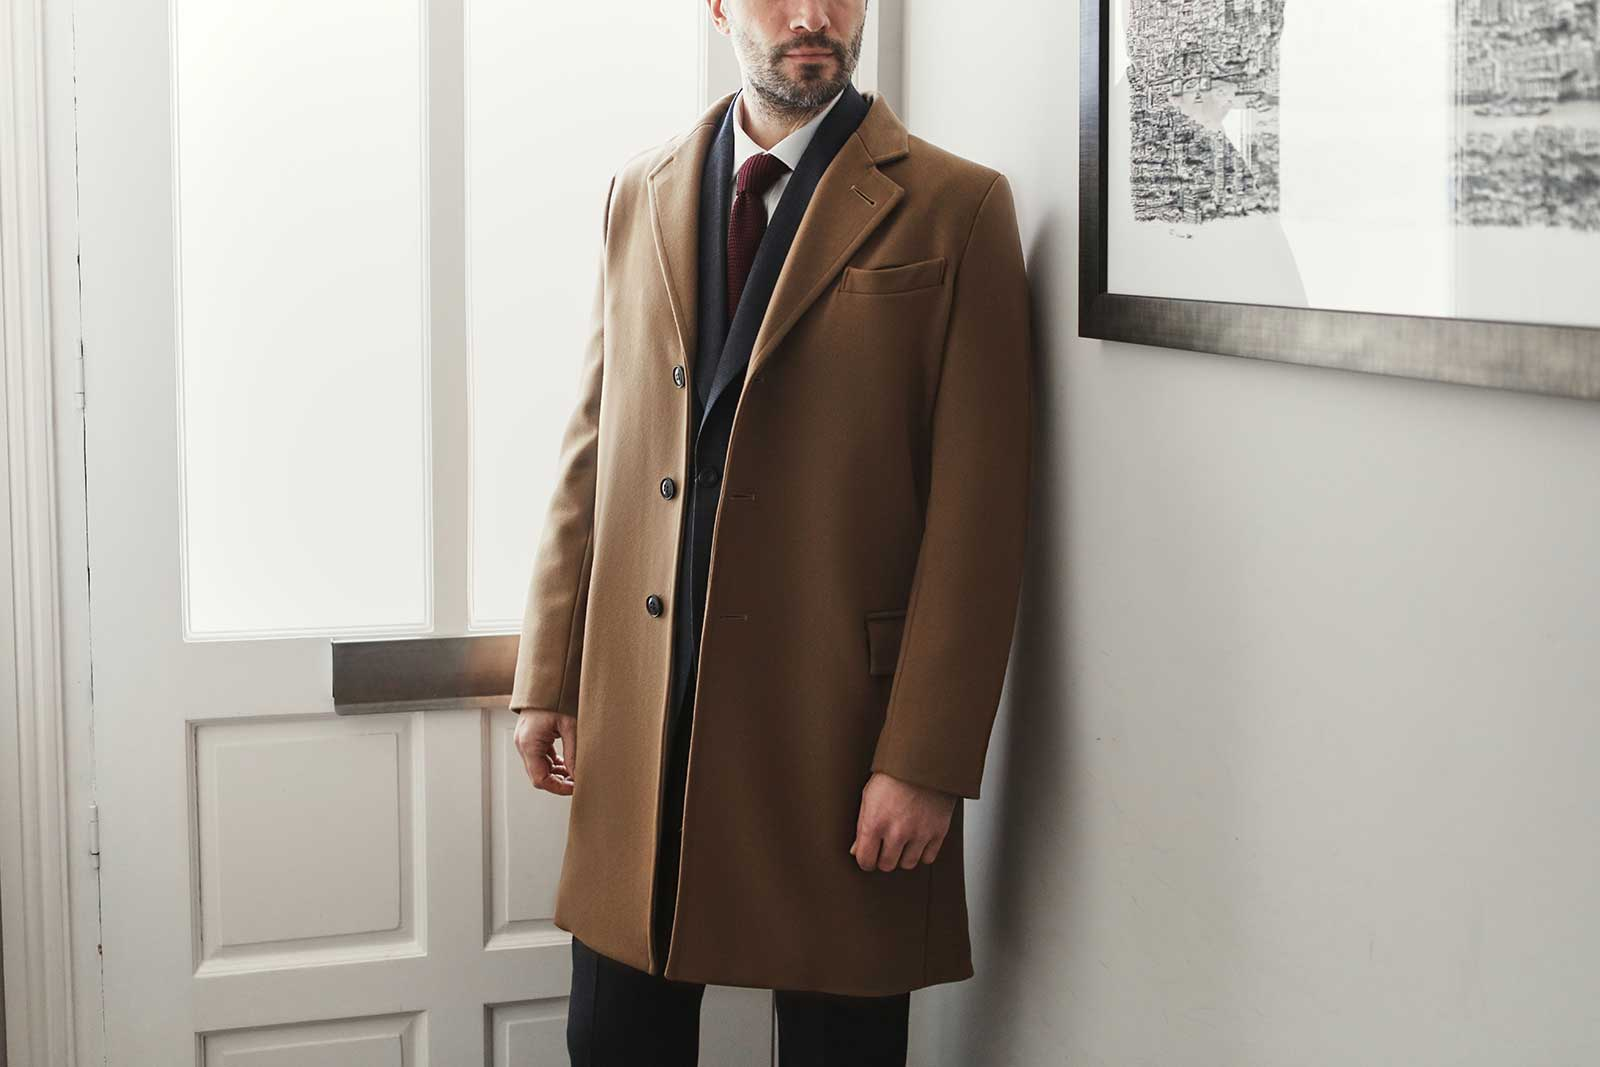 Overcoat for an office